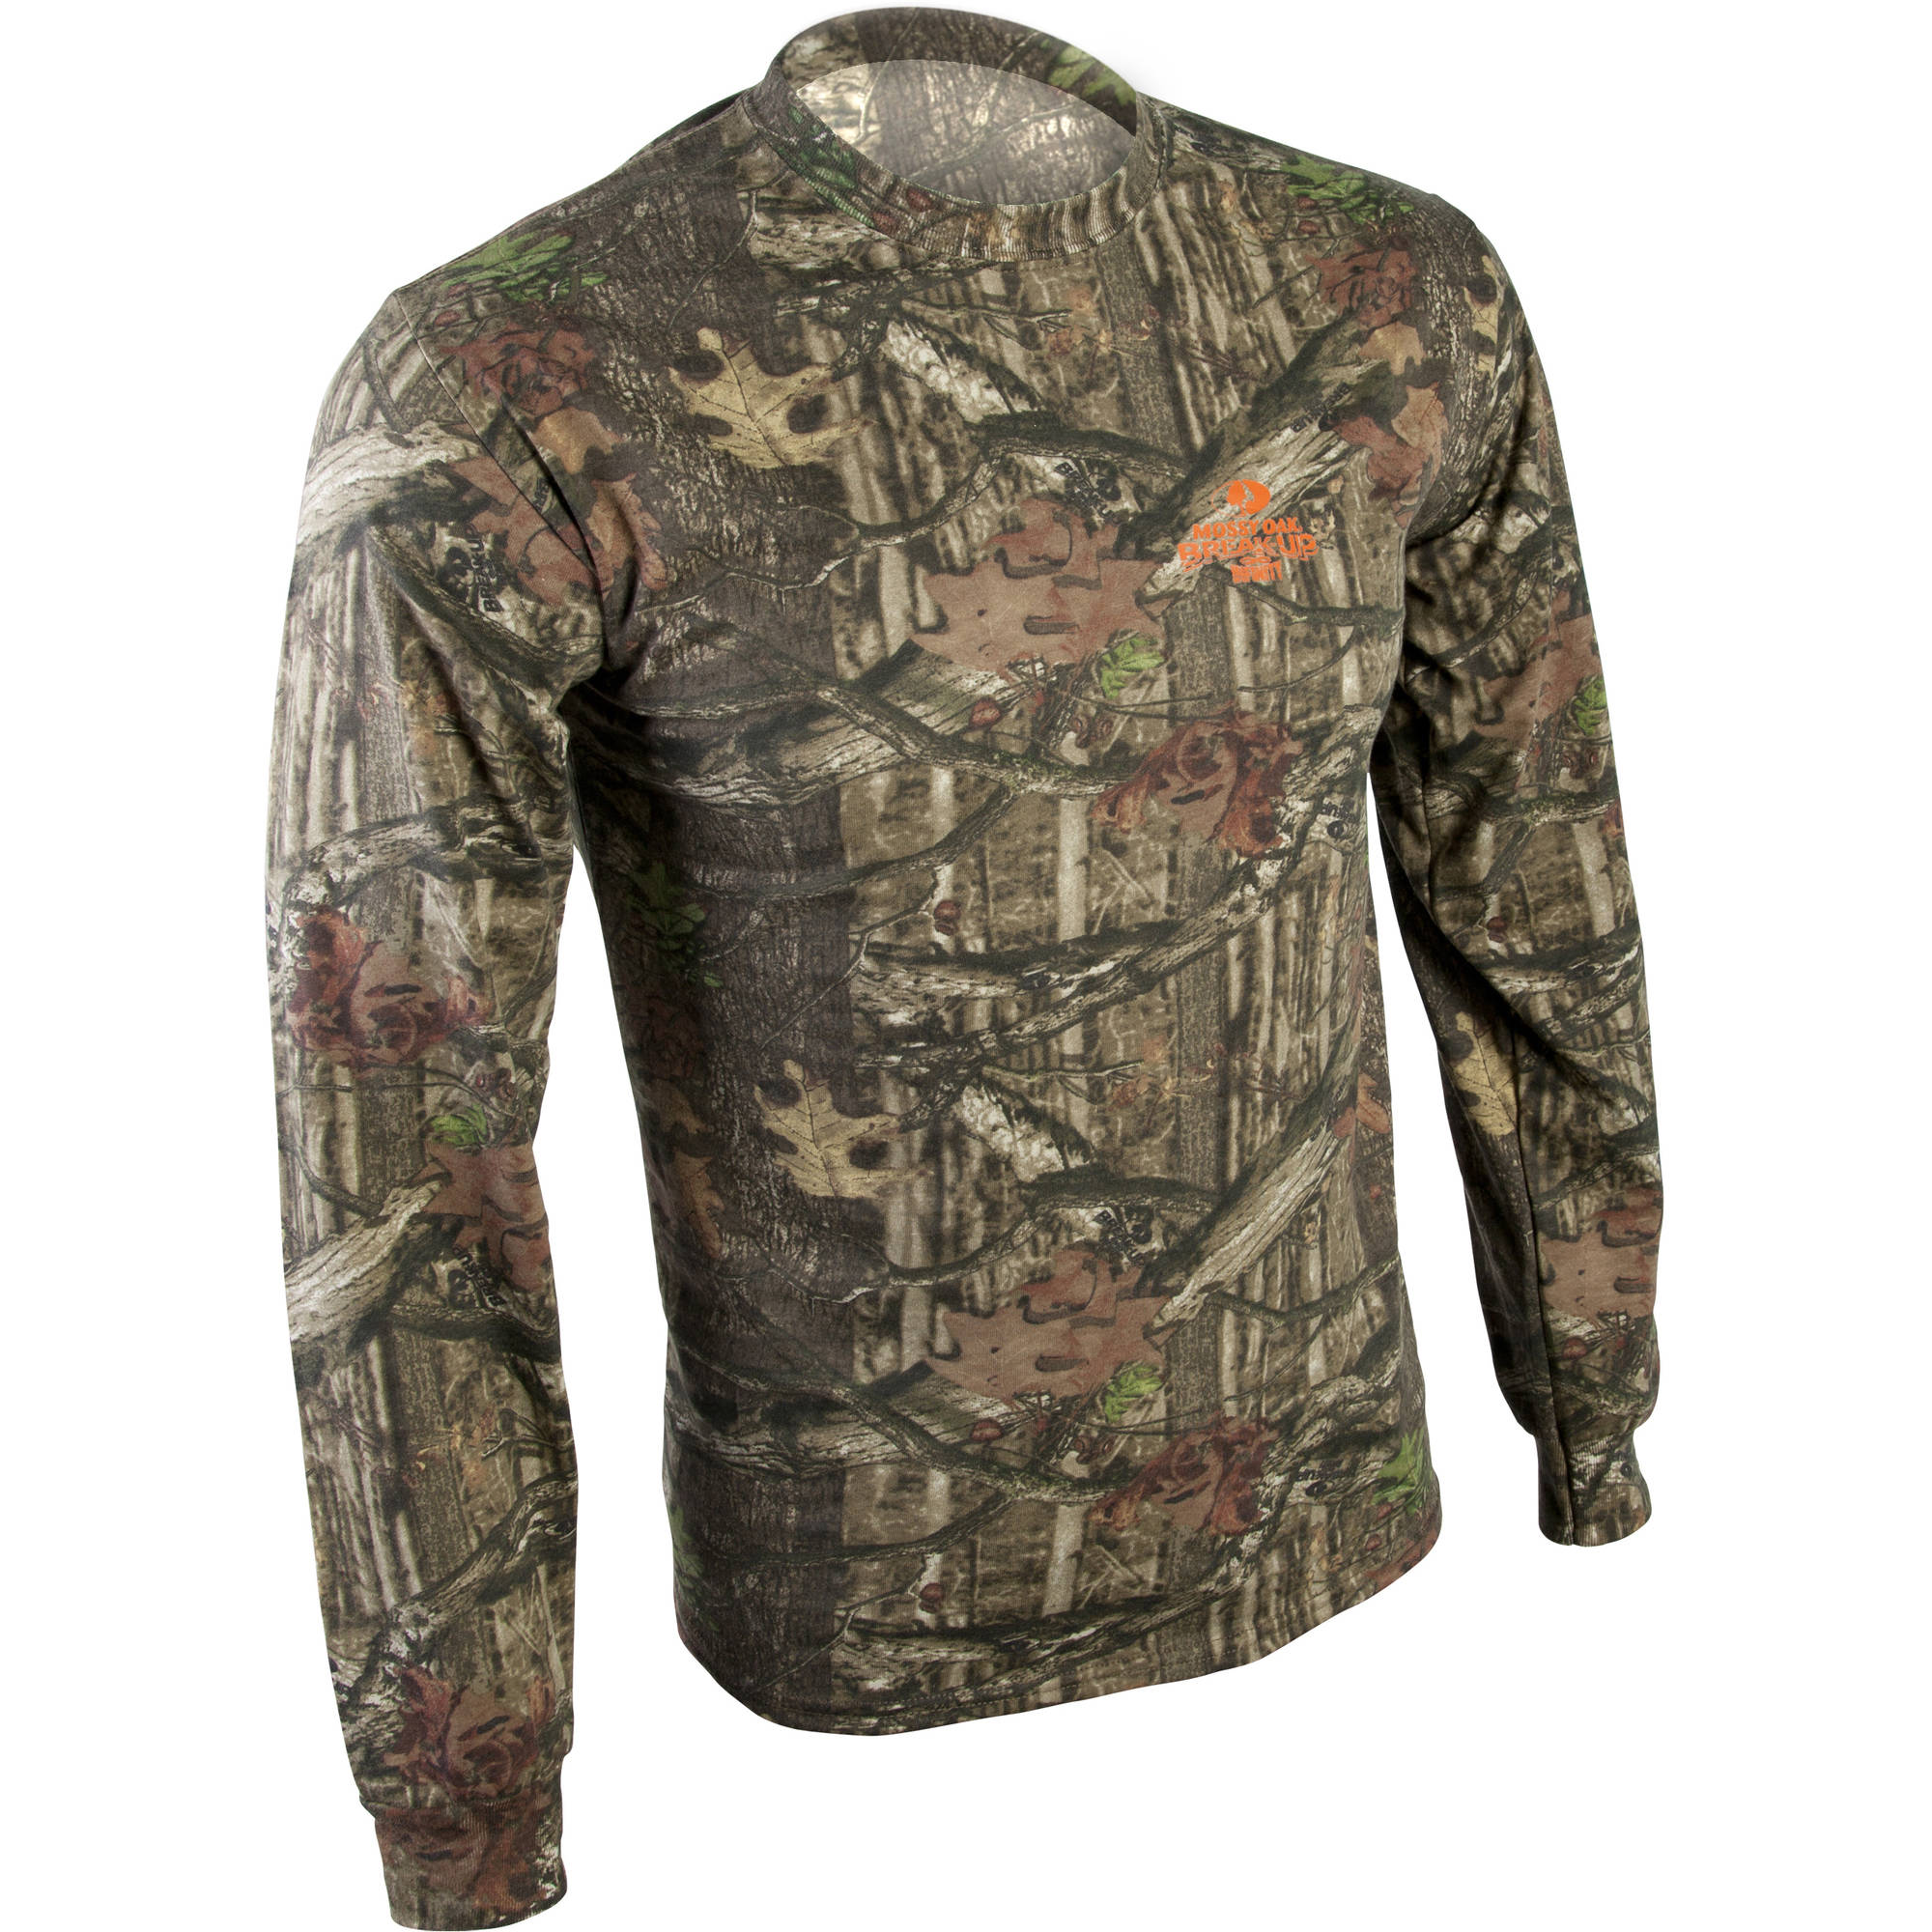 Mossy Oak Men's Camo Long Sleeve Tee